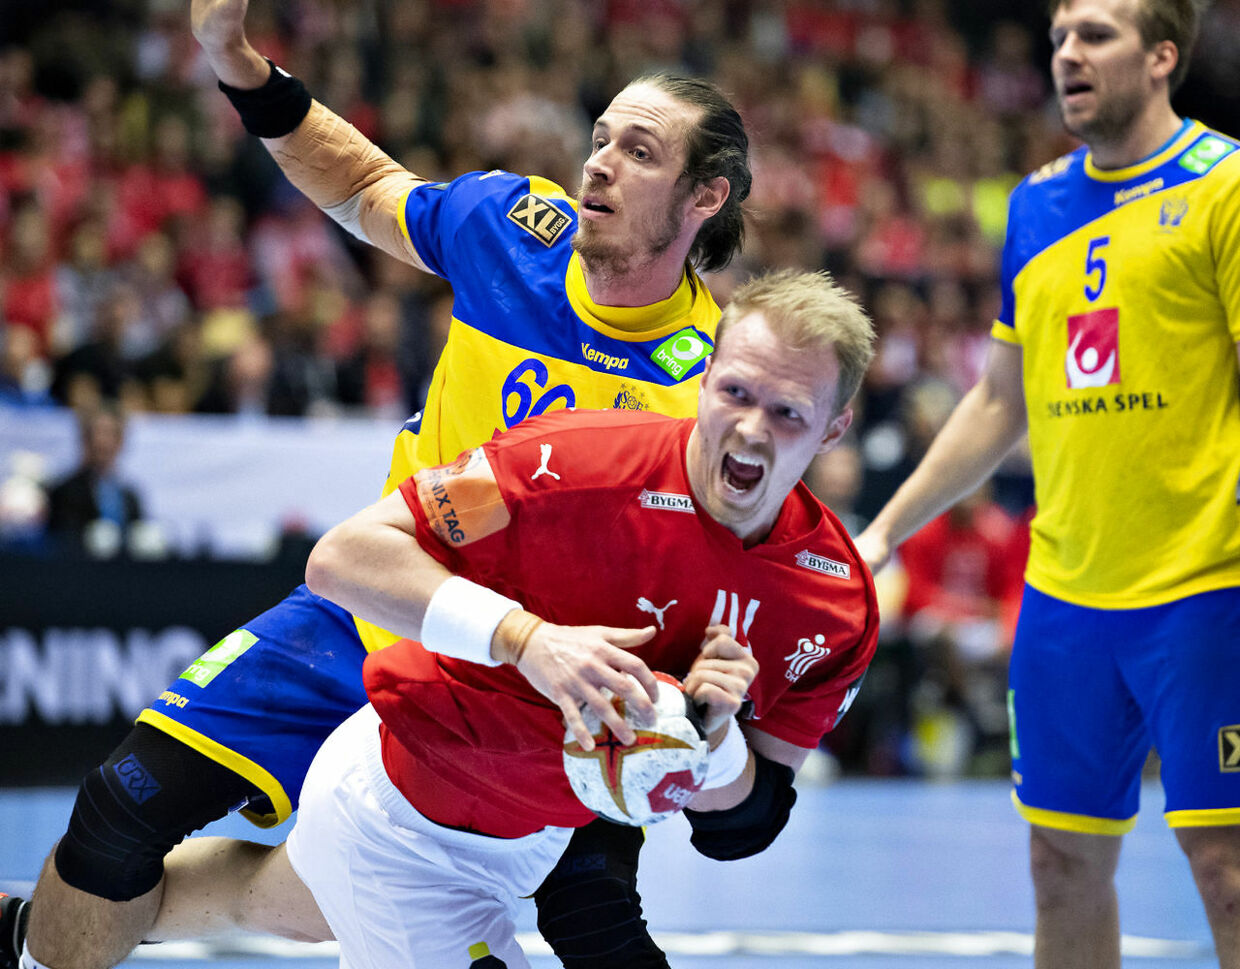 Anders Zachariassen of Denmark is stopped by Kim Ekdahl du Rietz of Sweden during the men's IHF Handball World Championship Main Round Group 2 match between Denmark and Sweden in Herning, Denmark, Wednesday, Jan. 23, 2019.